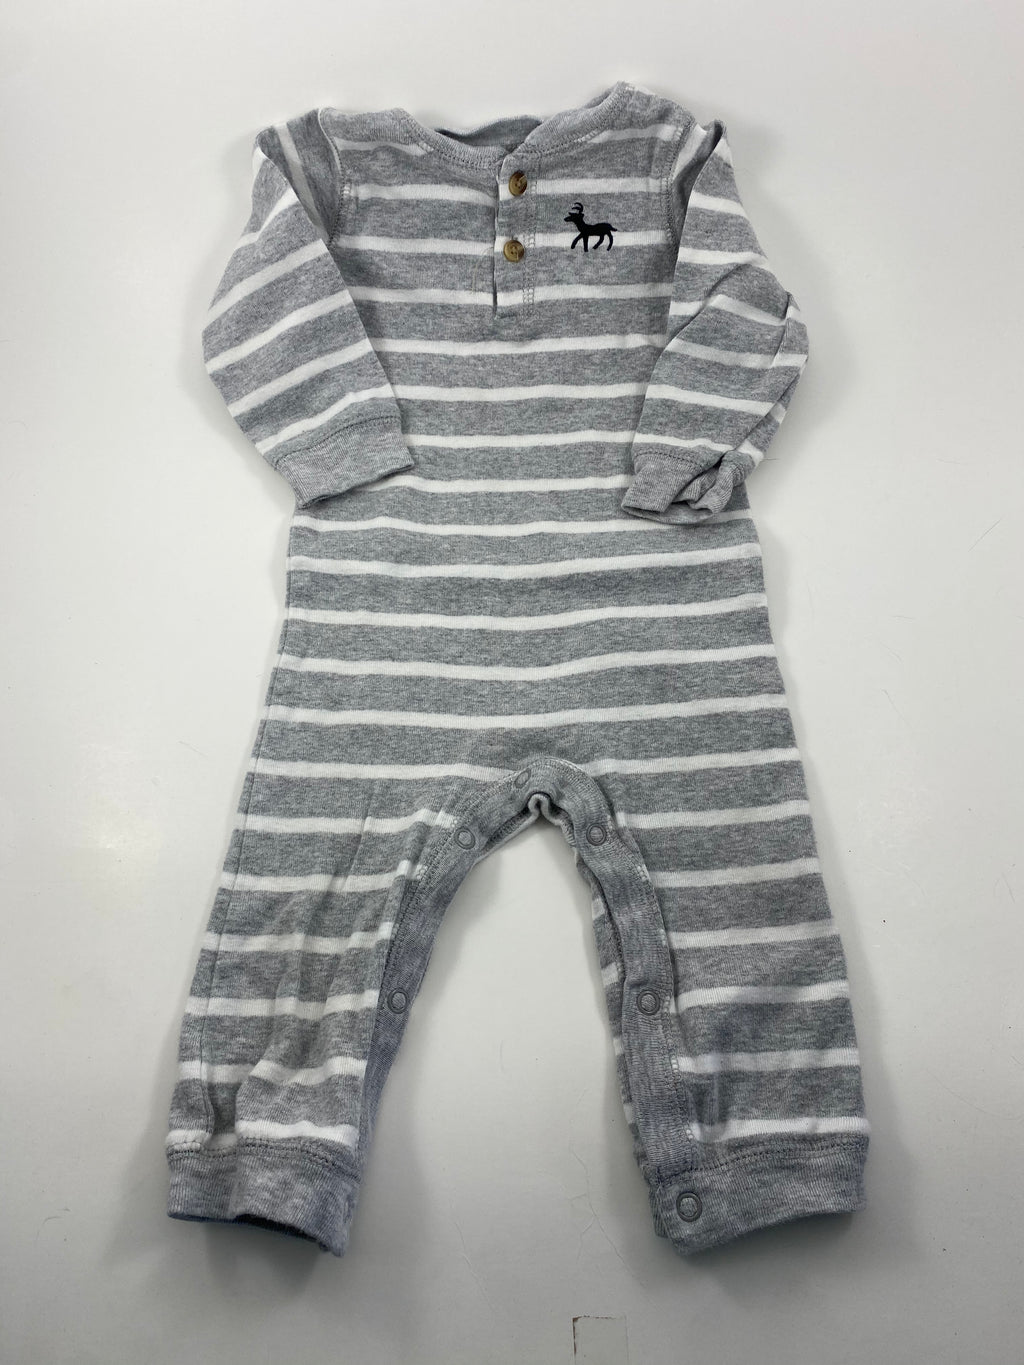 Boy's Long Sleeve Outfit - Size 6-12mo